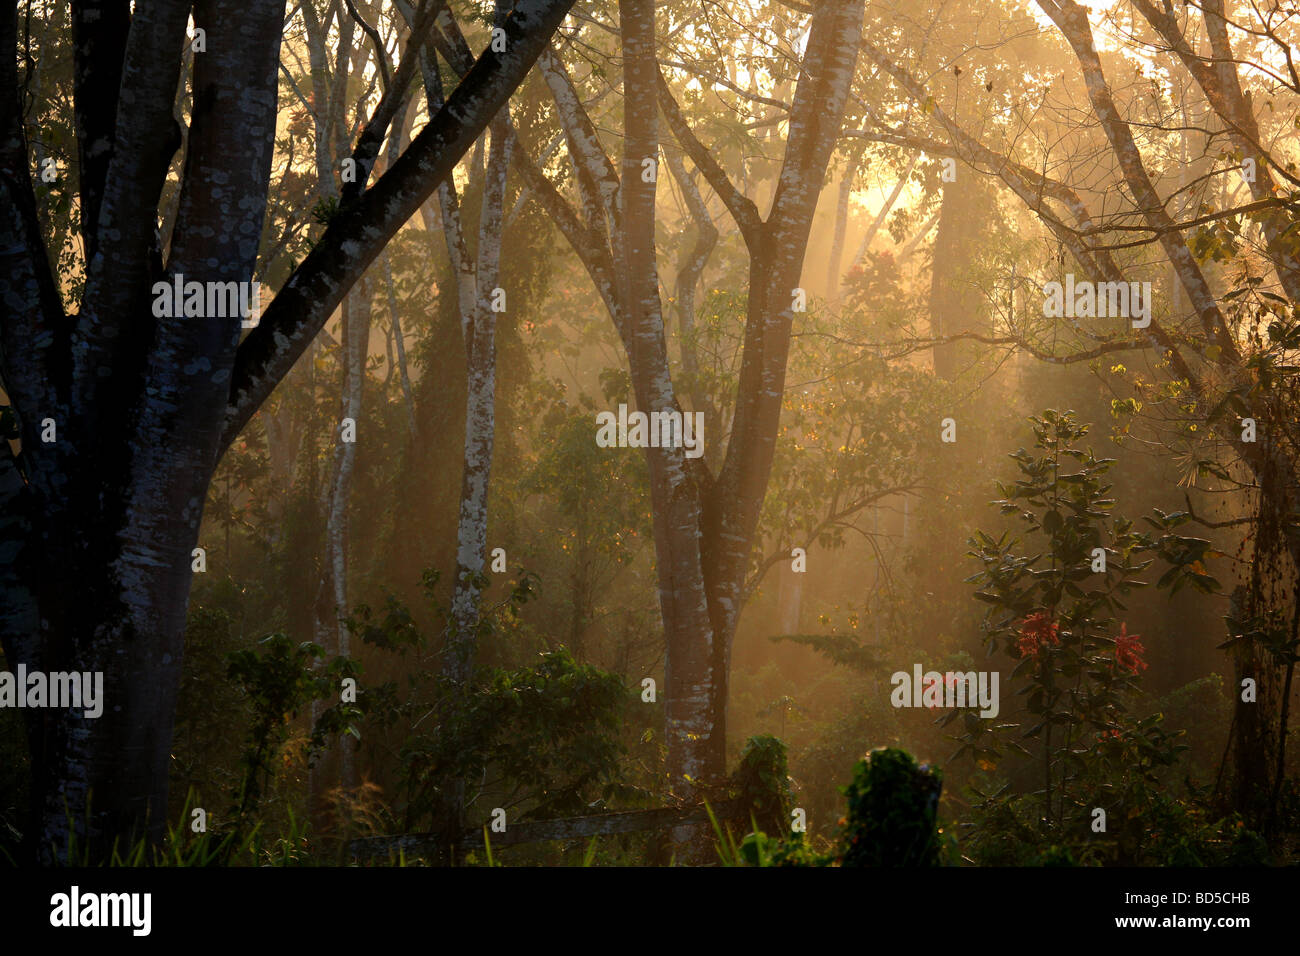 Early morning mist near Cana field station in Darien national park, Republic of Panama. - Stock Image